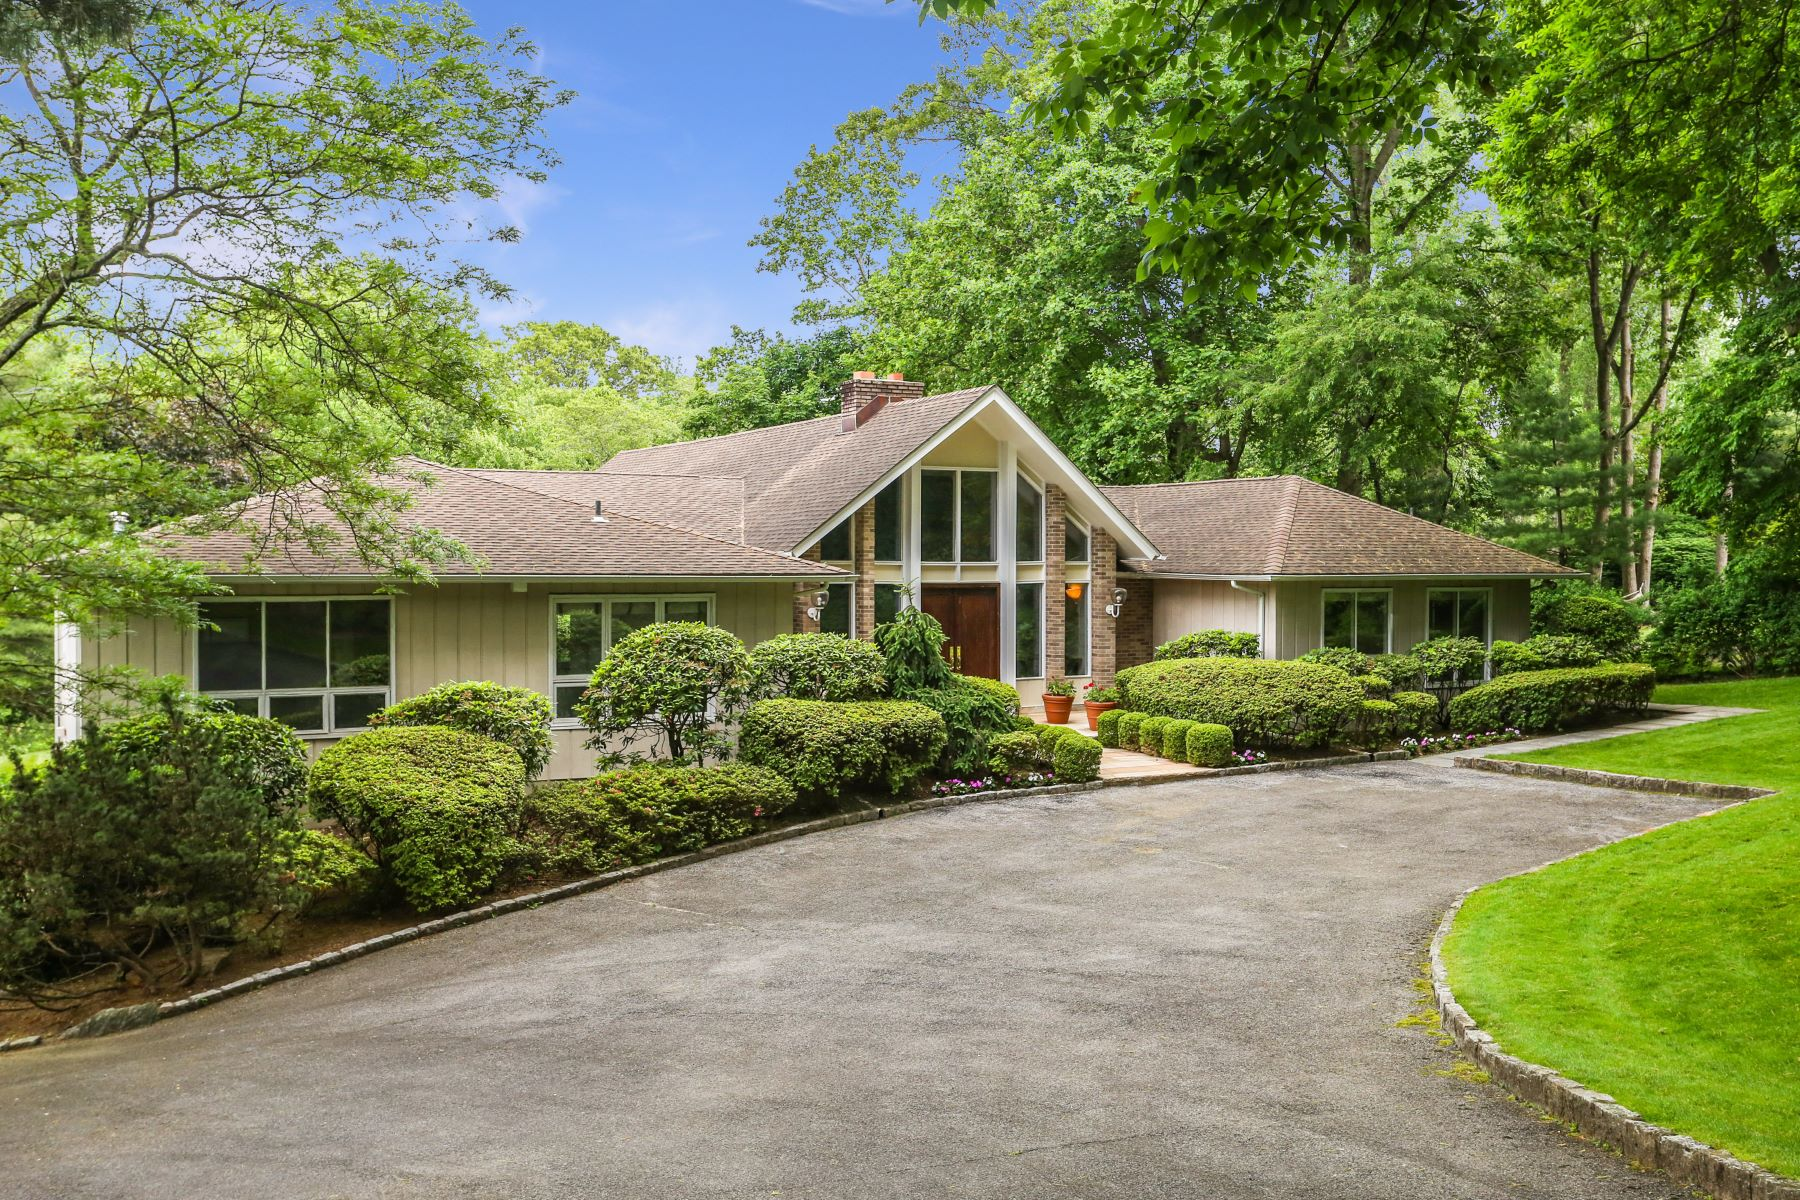 Single Family Homes for Active at 15 Rolling Hills Lane Harrison, New York 10528 United States